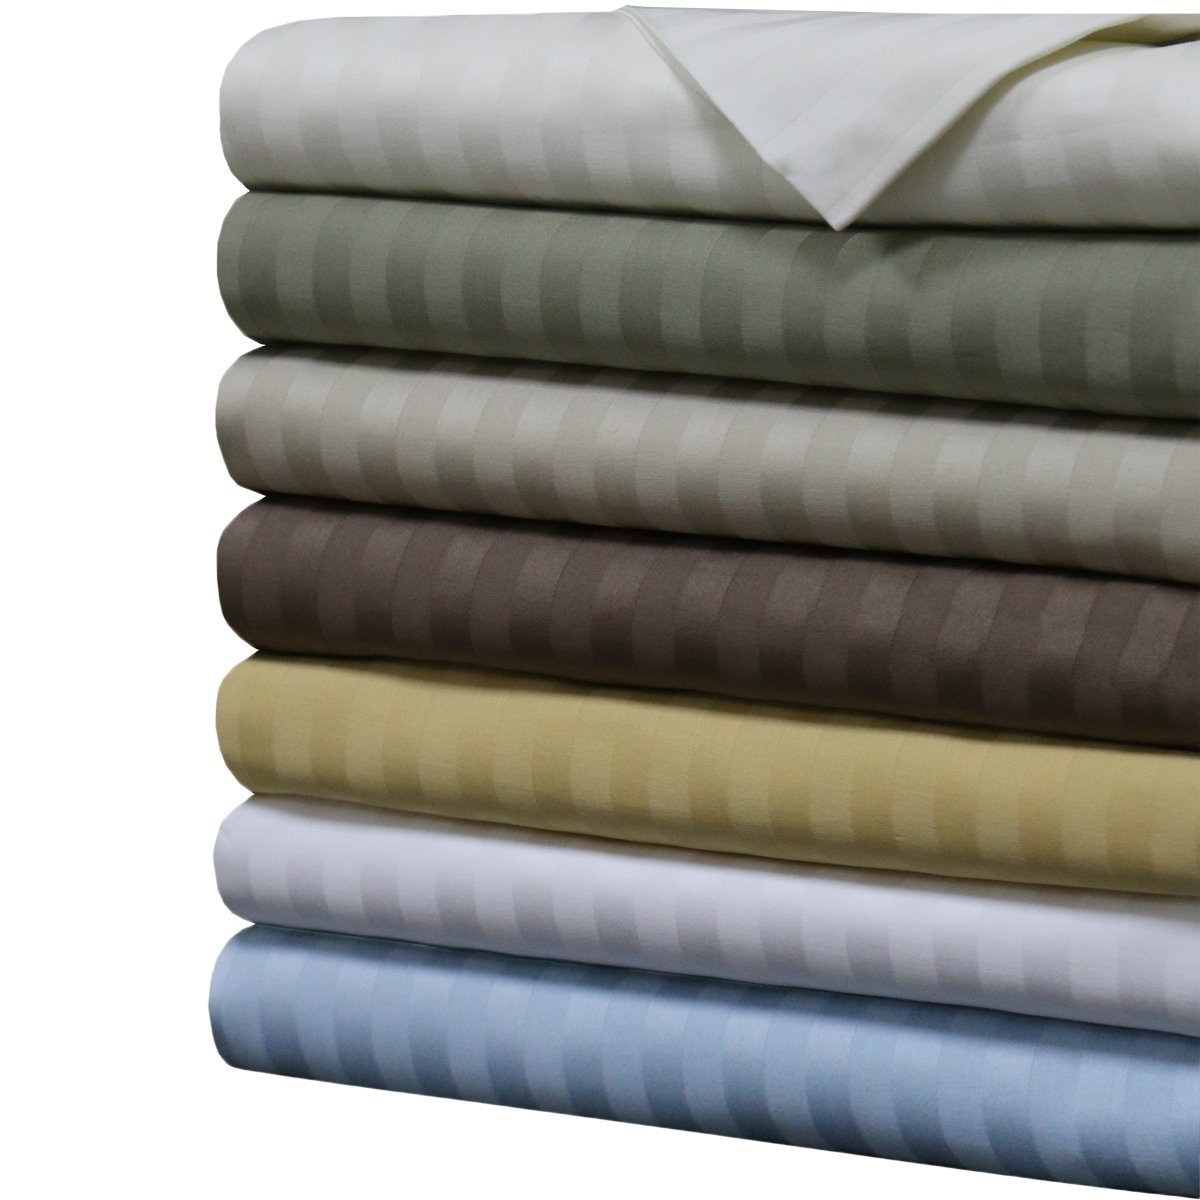 Stripes Gold 1000 Thread Count Queen Size Sheet Set, 100% Cotton Deep Pocket Bed Sheets 1000TC.